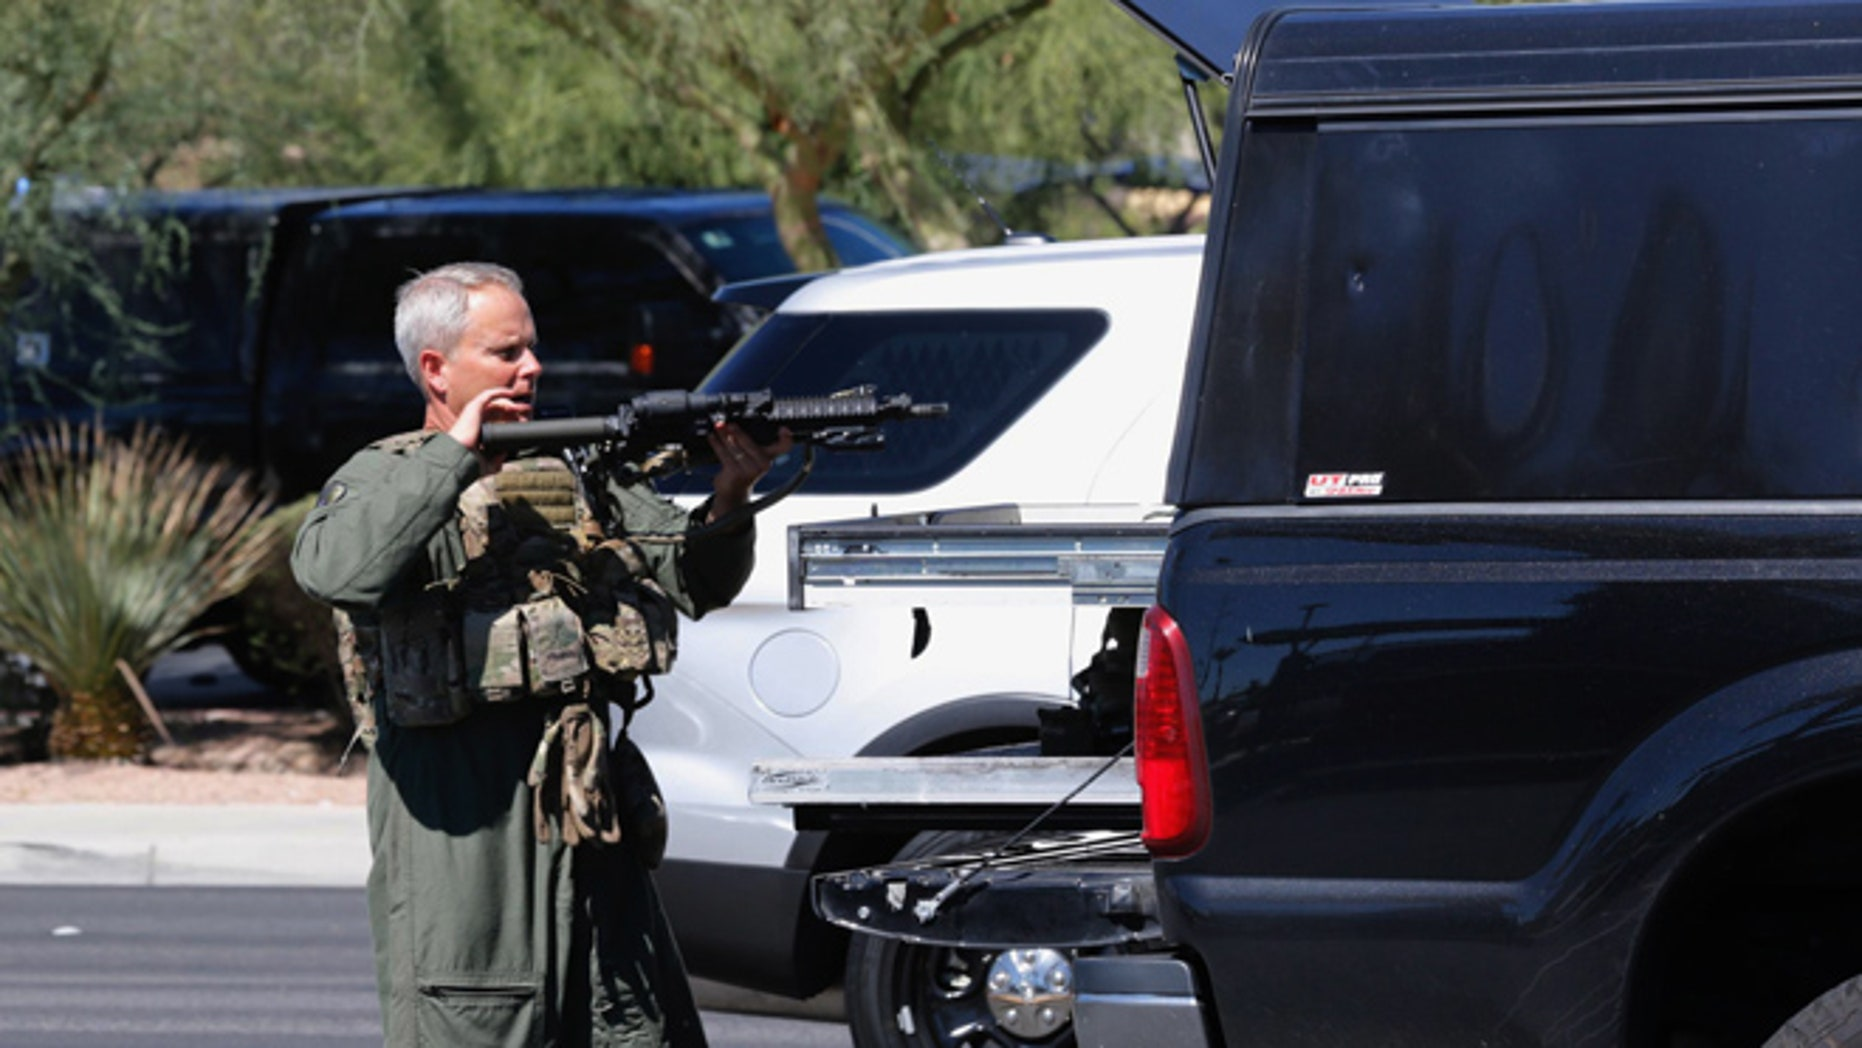 A member of the SWAT team holds a gun as officers investigate a shooting that occurred inside a coffee shop in Las Vegas on Sunday, Sept. 25, 2016. Police said two men got into an argument and then one pulled out a gun and opened fire. (Chitose Suzuki/Las Vegas Review-Journal via AP)